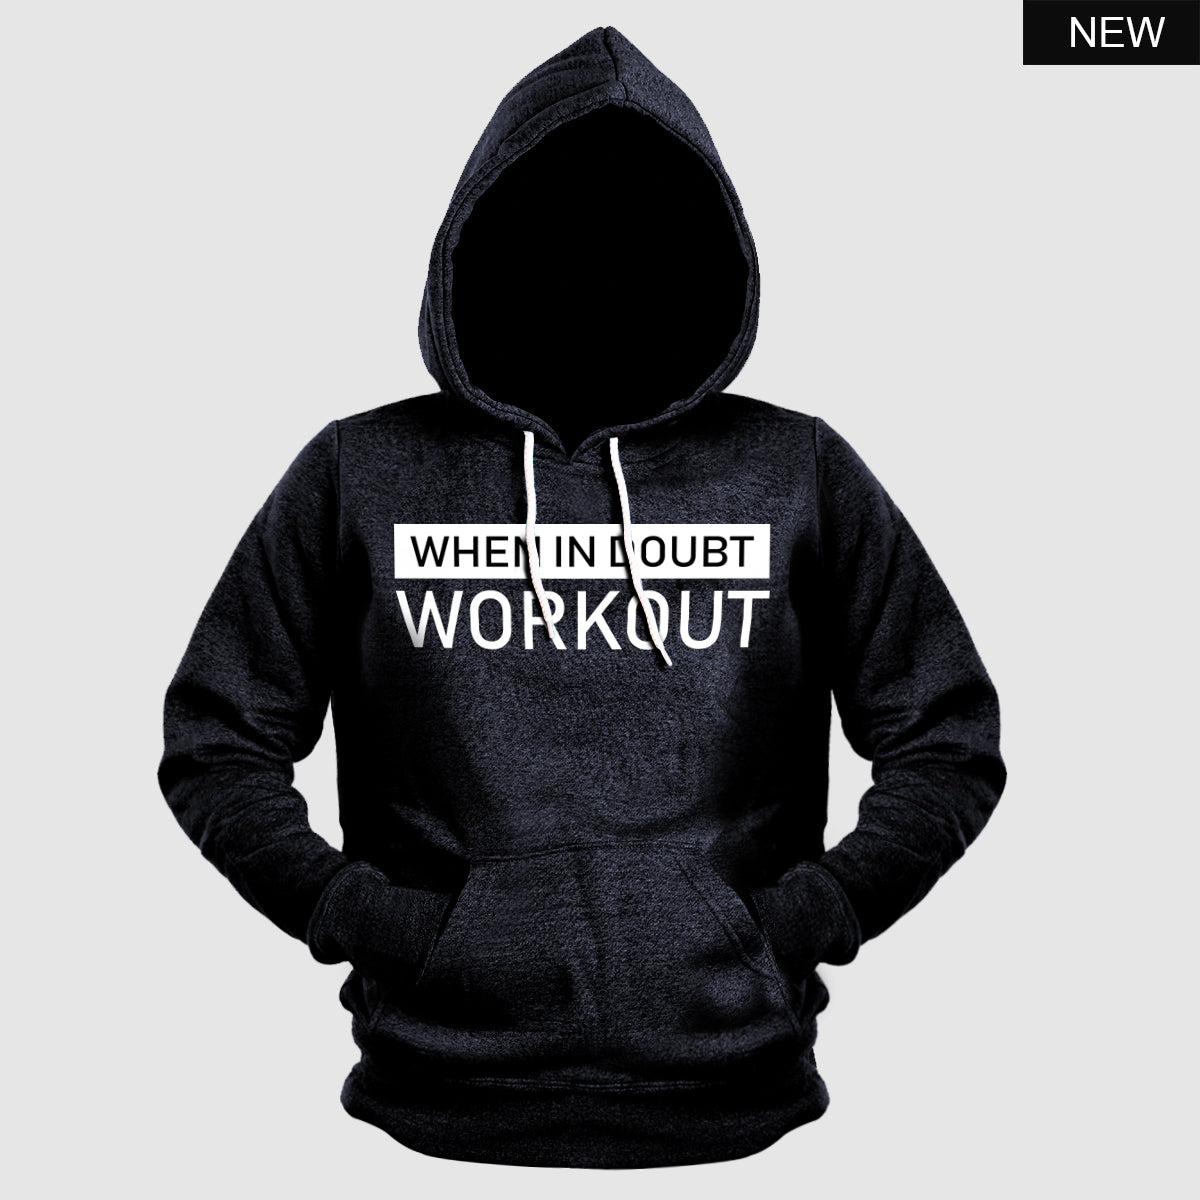 When in Doubt Workout Hoodie